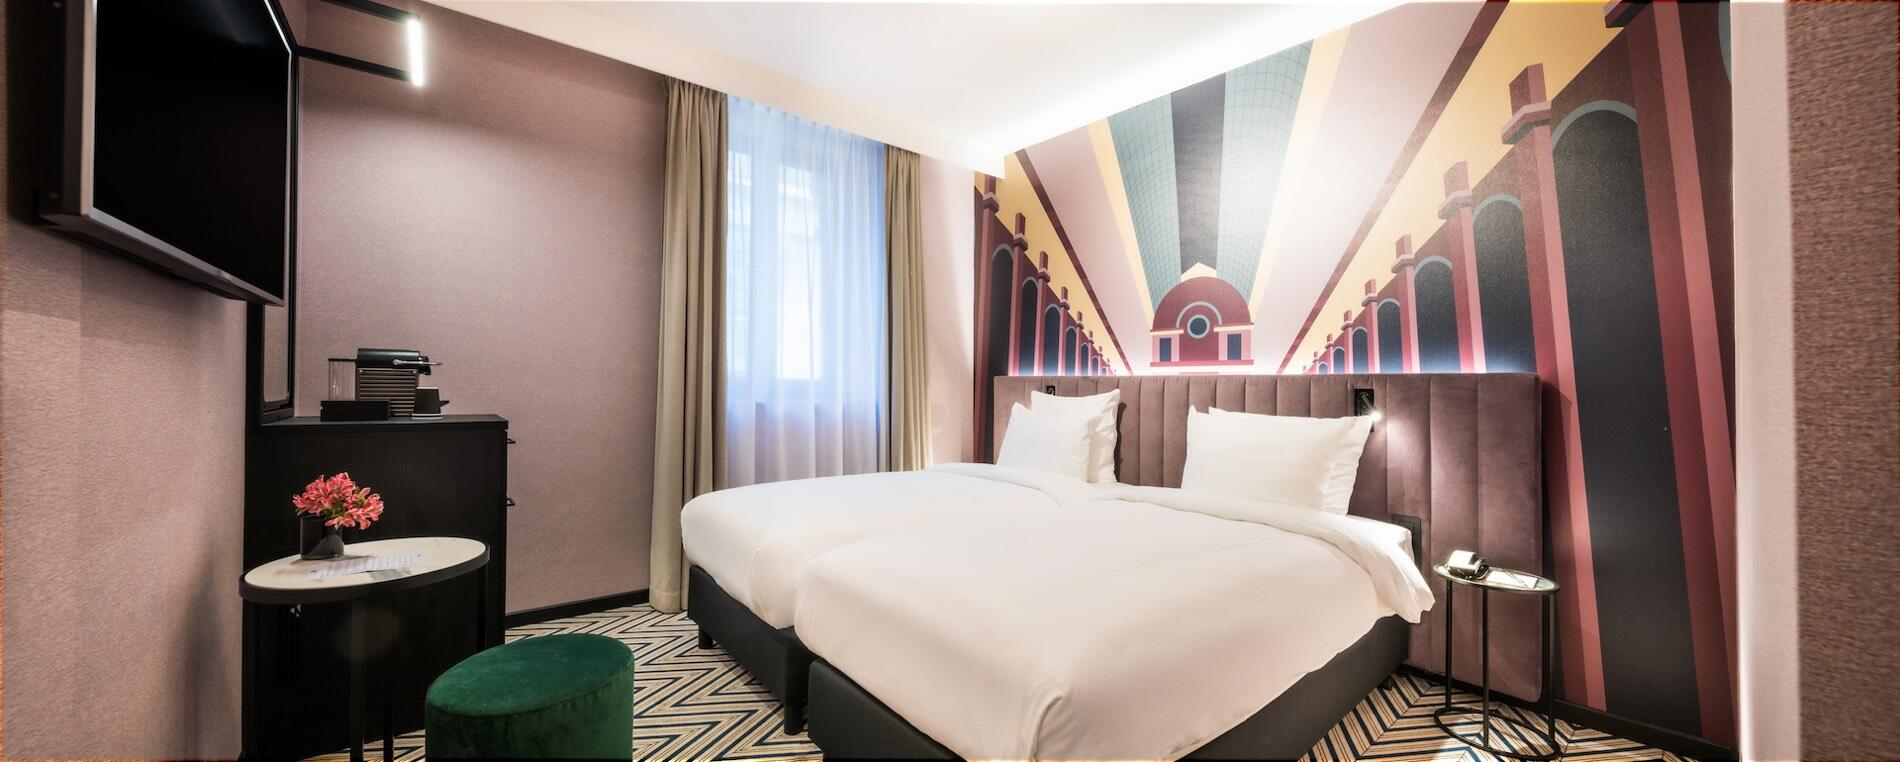 Double room at Hotel Hubert Brussels near Grand Place